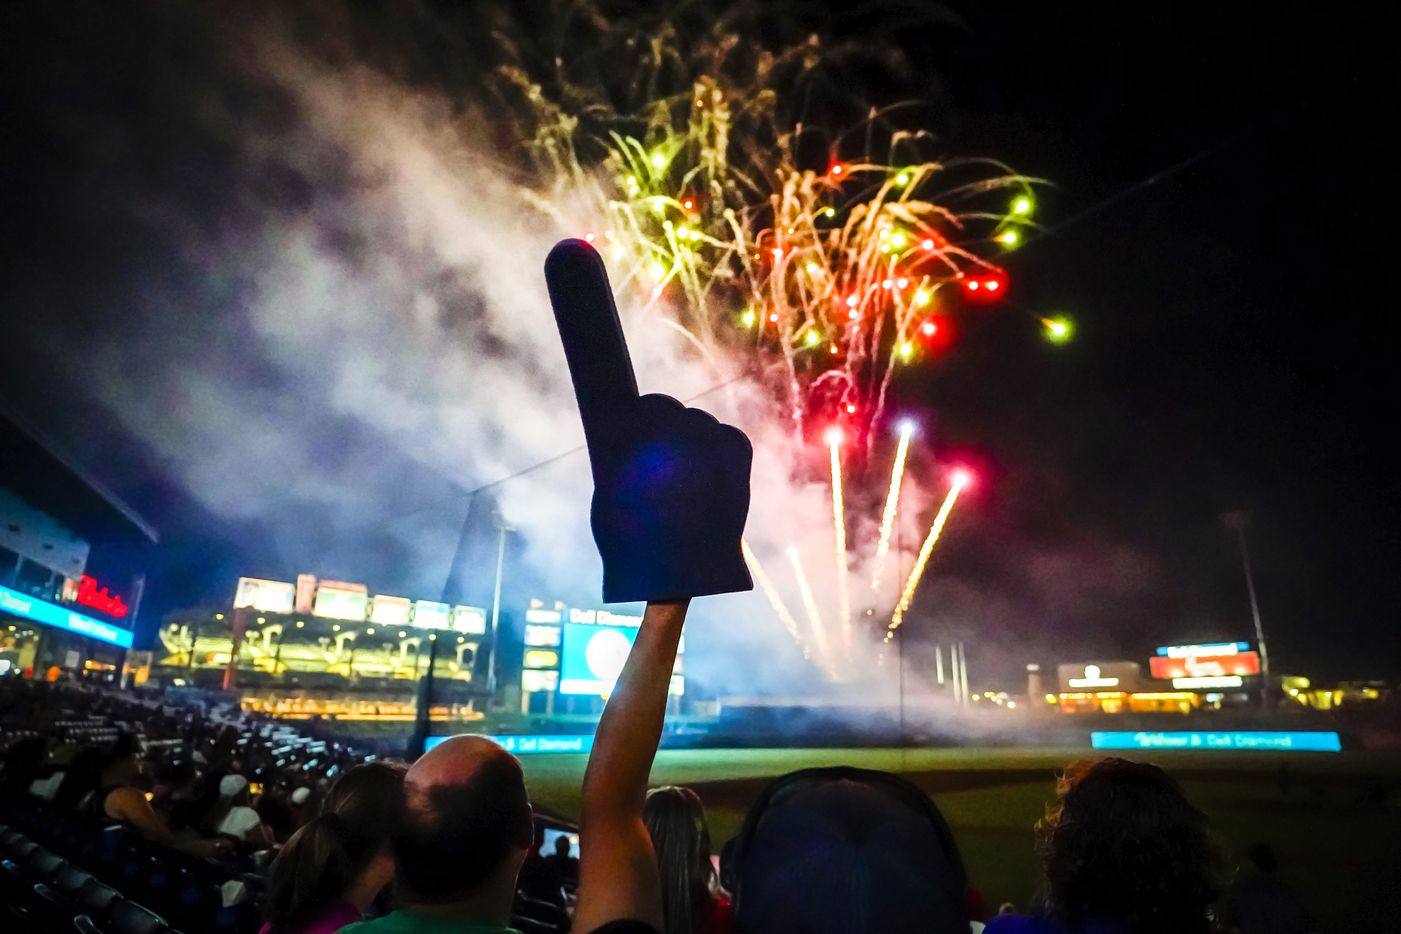 A fan waves a foam finger during fireworks after a 6-0 Round Rock Express victory over the Oklahoma City Dodgers in the season opener at Dell Diamond on Thursday, May 6, 2021, in Round Rock, Texas.